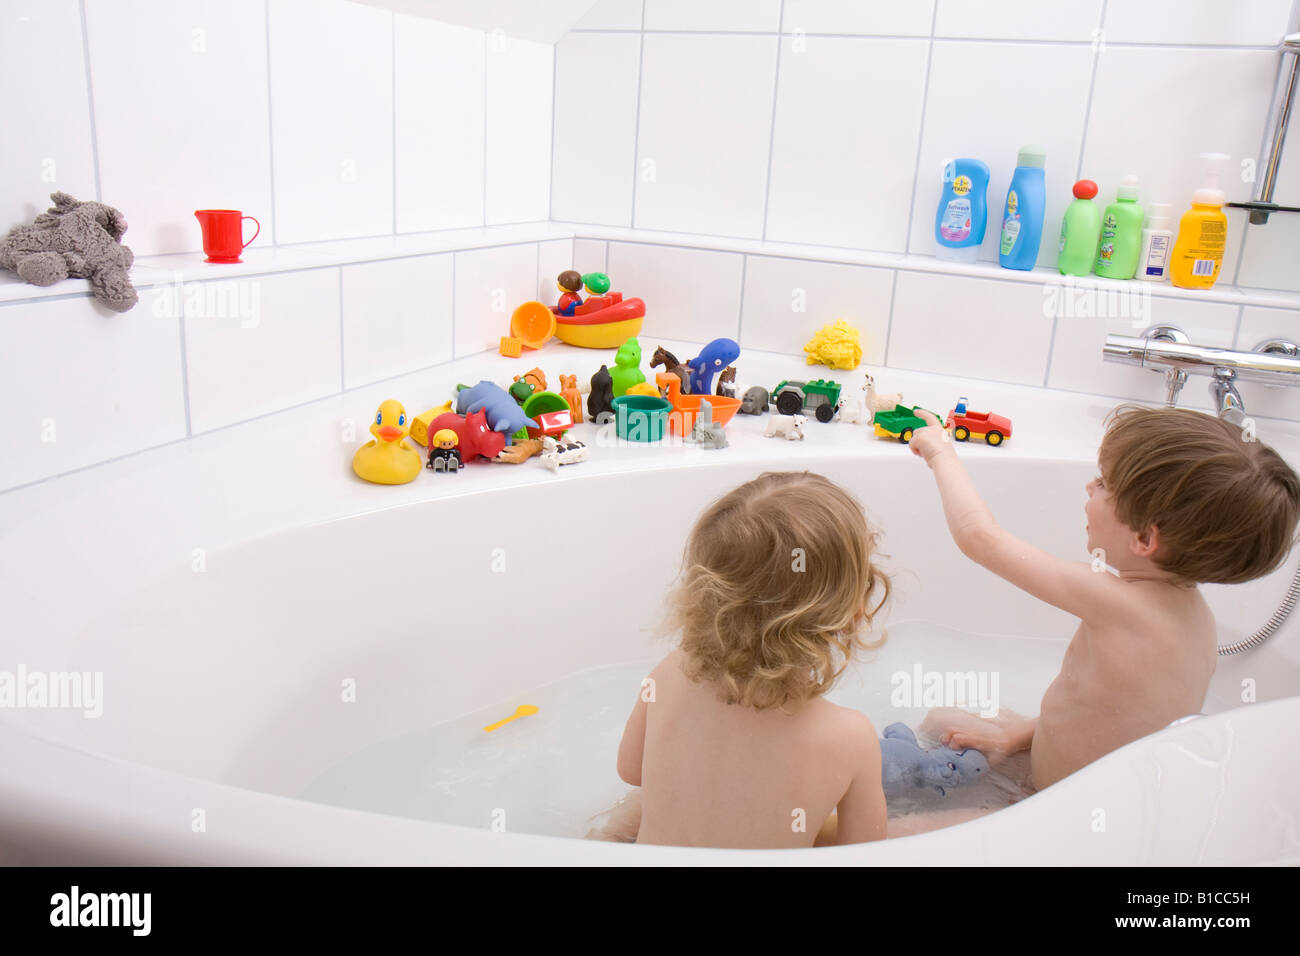 little children playing in the bath tub Stock Photo: 18098013 - Alamy